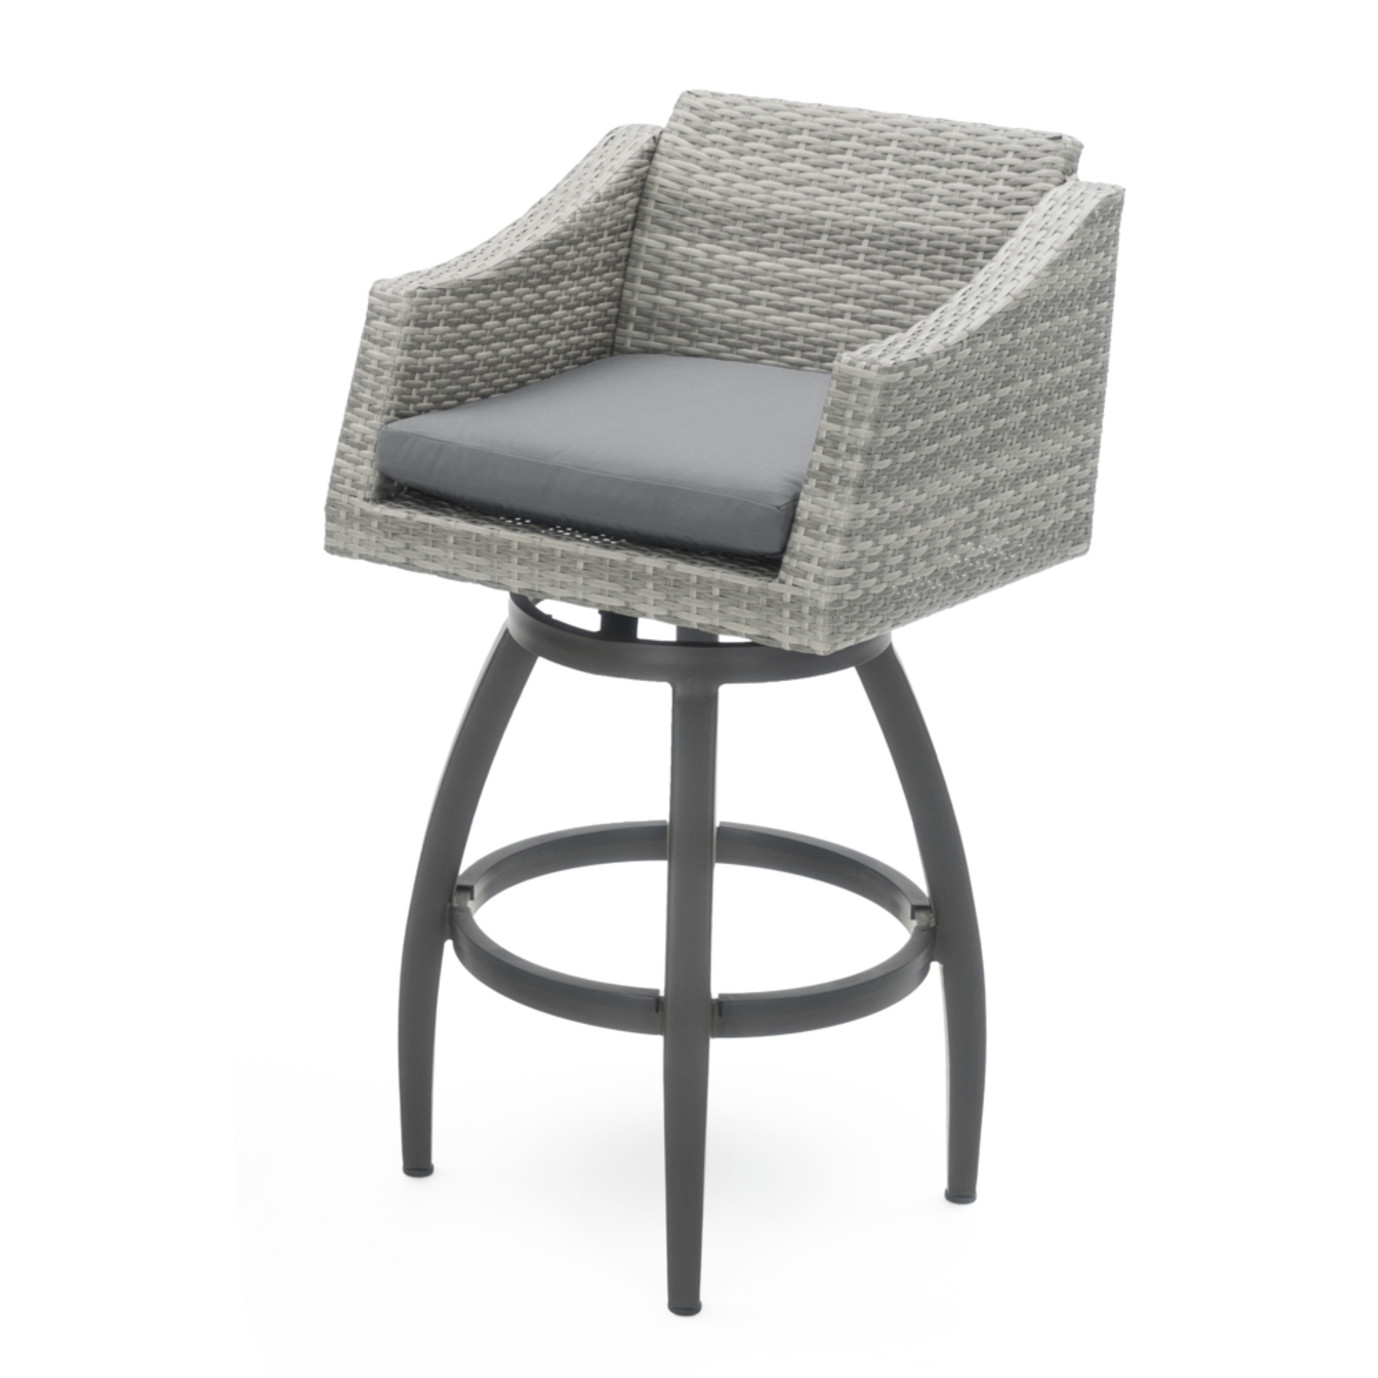 Cannes™ 5 Piece Barstool Set - Charcoal Gray